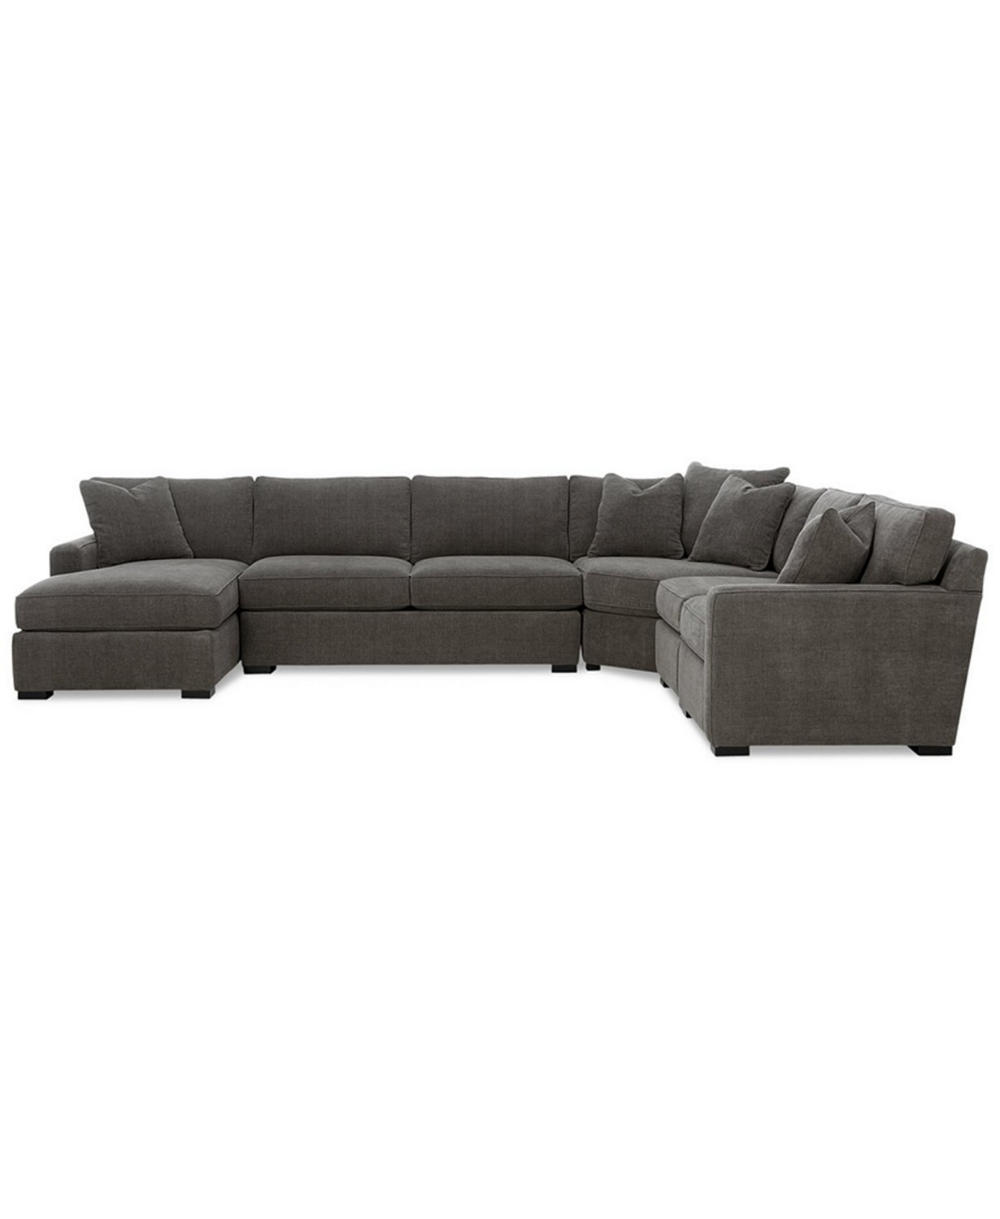 Furniture Radley 5 Piece Fabric Chaise Sectional Sofa Created For Macy S Reviews Furniture Macy S Fabric Sectional Sofas Custom Sofa Sectional Sofa